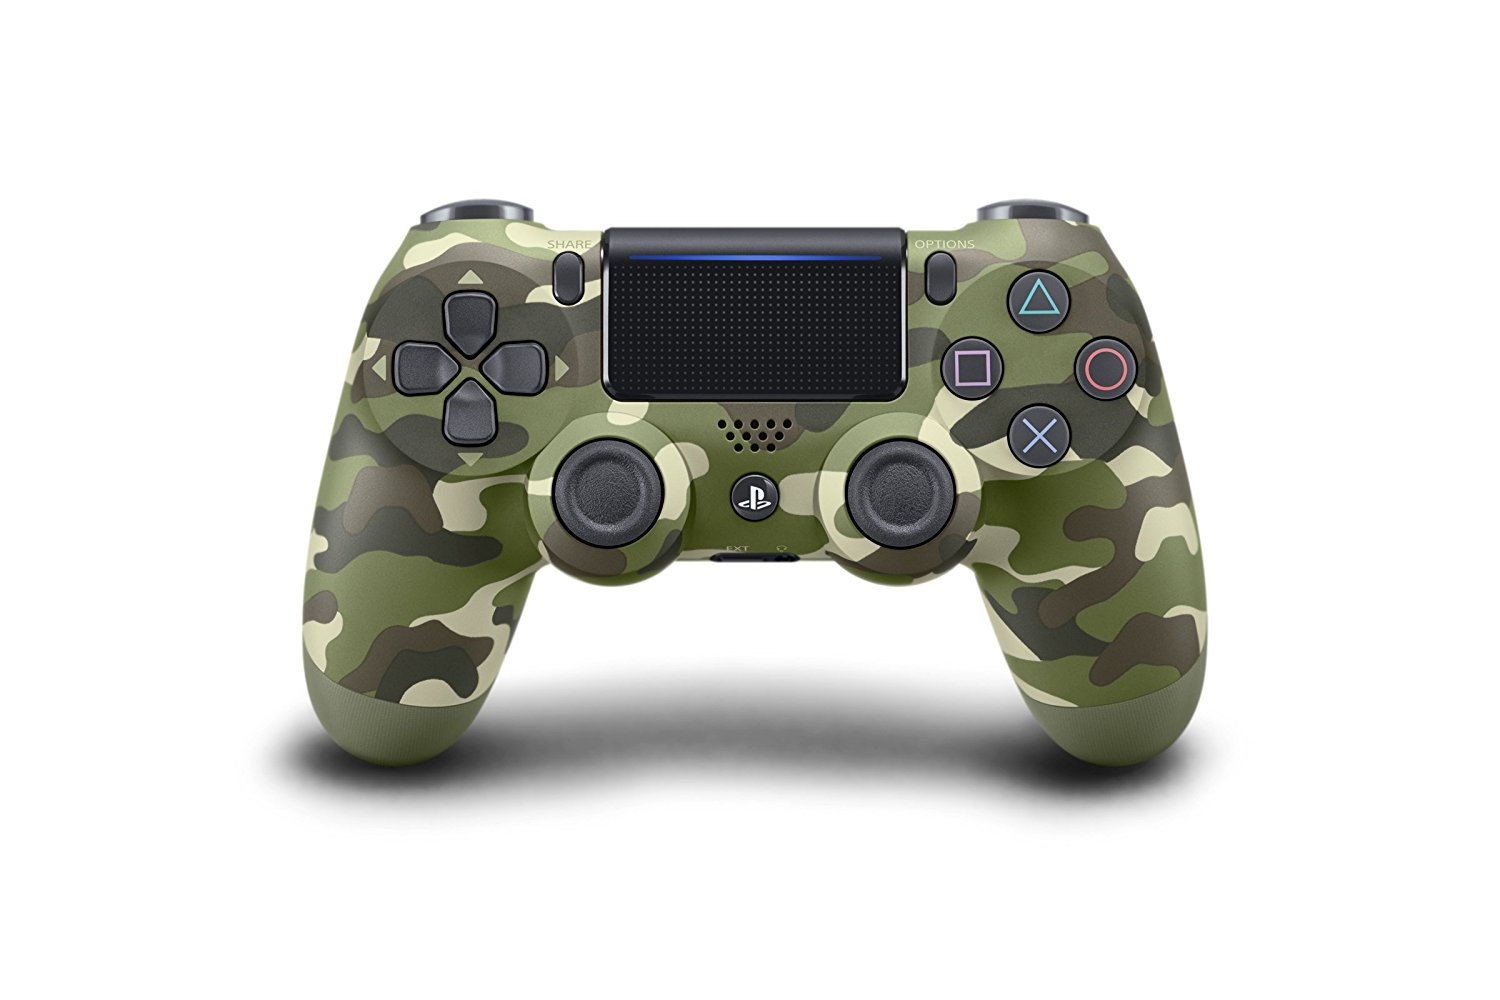 DualShock-4-Wireless-Controller-for-PlayStation-4-Green-Camouflage-1